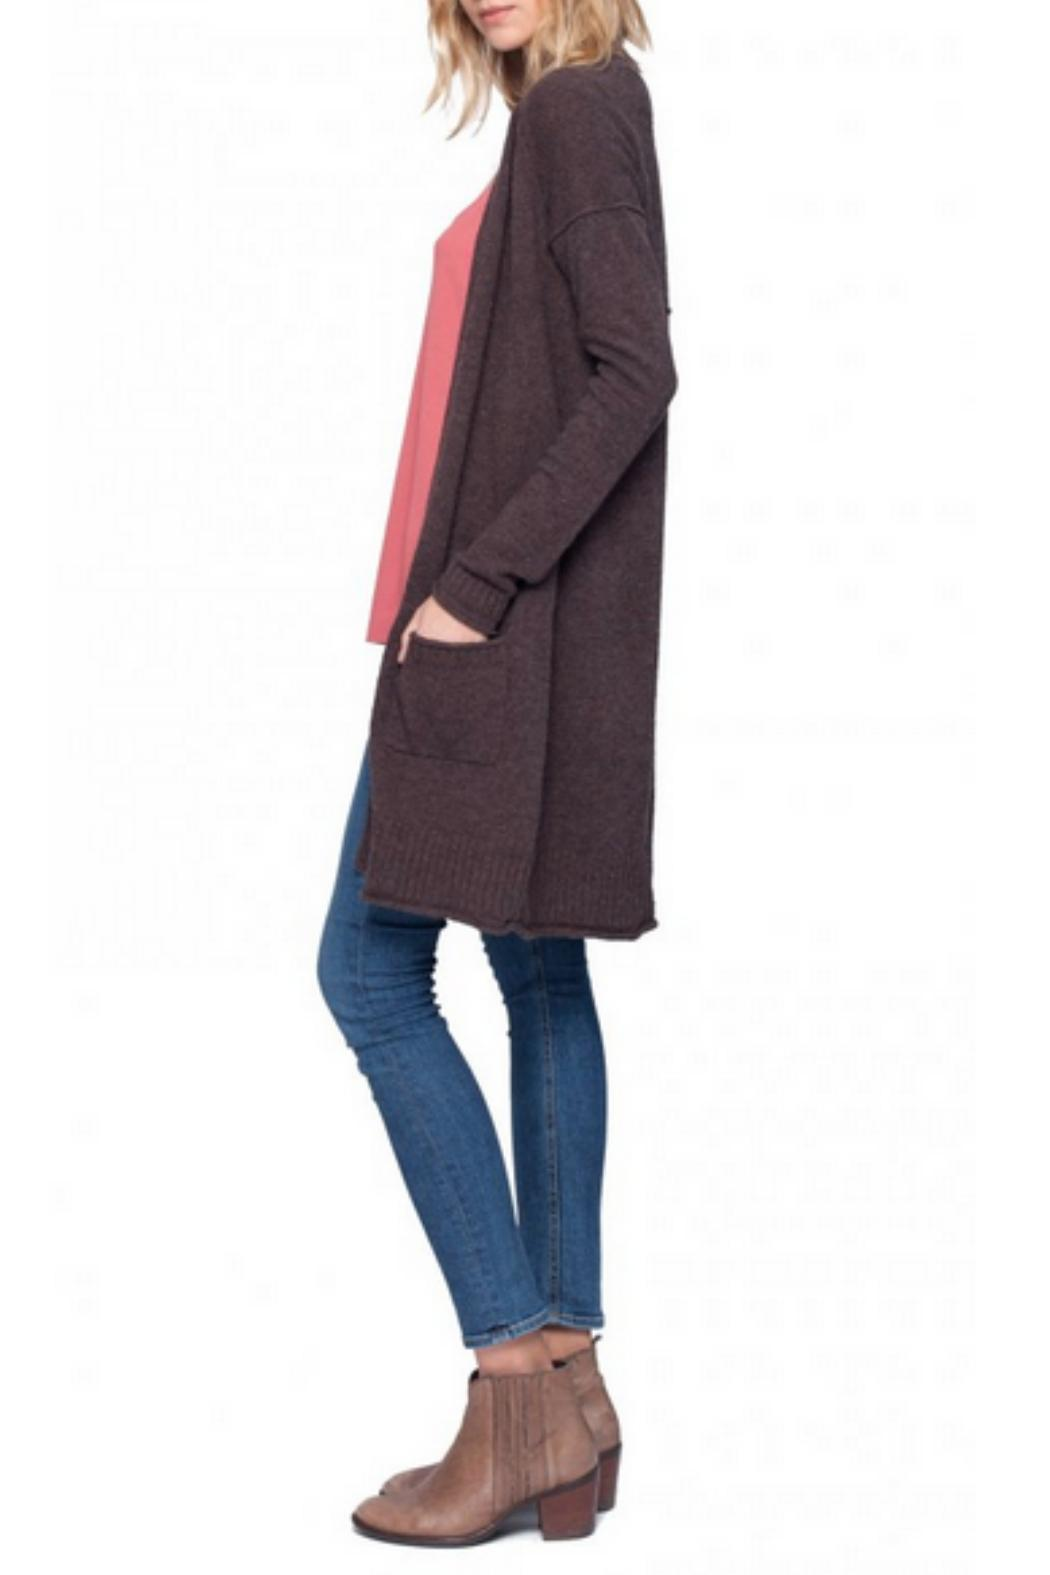 Gentle Fawn Long Open Cardigan from Canada by Miss Boss. — Shoptiques